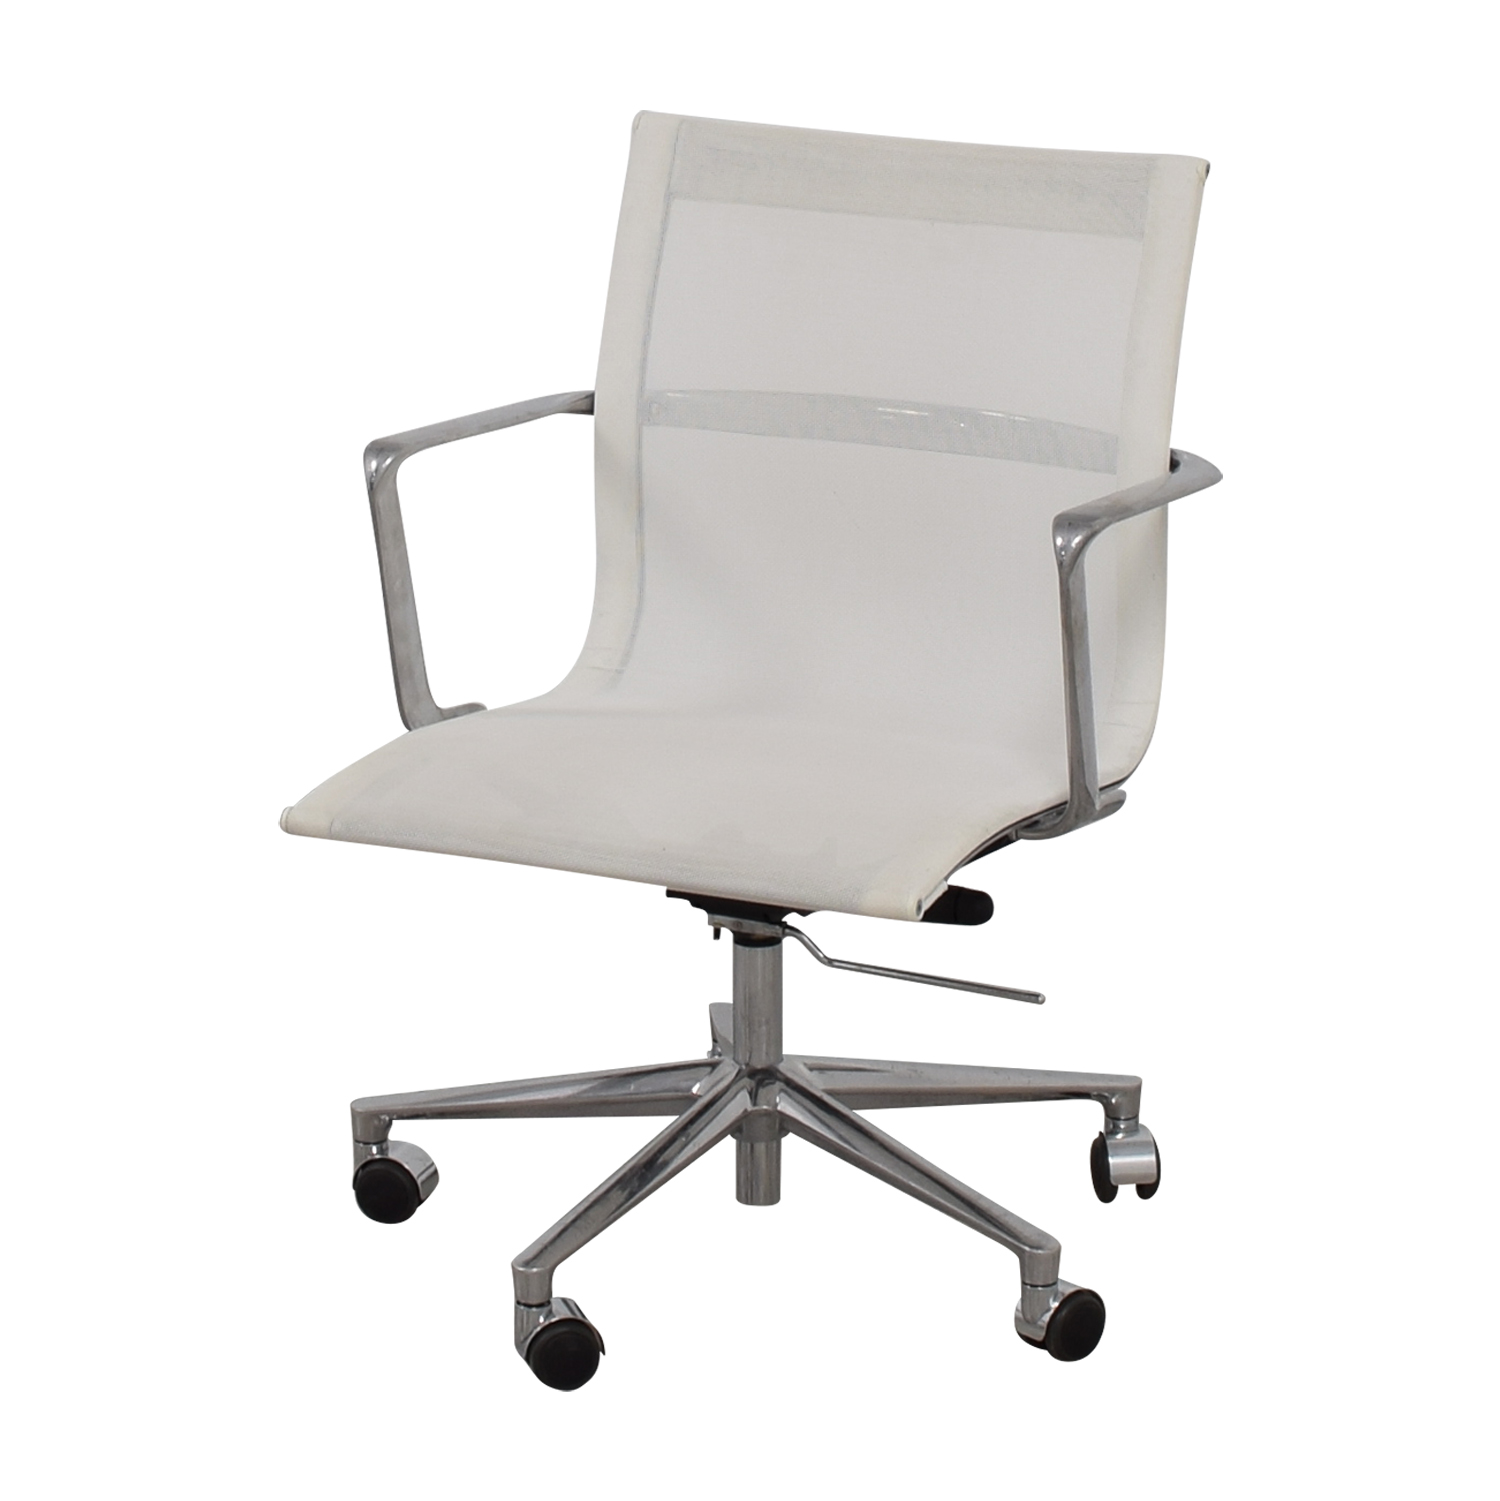 shop International Catsana Furniture International Catsana Furniture Una White Mesh Chair online